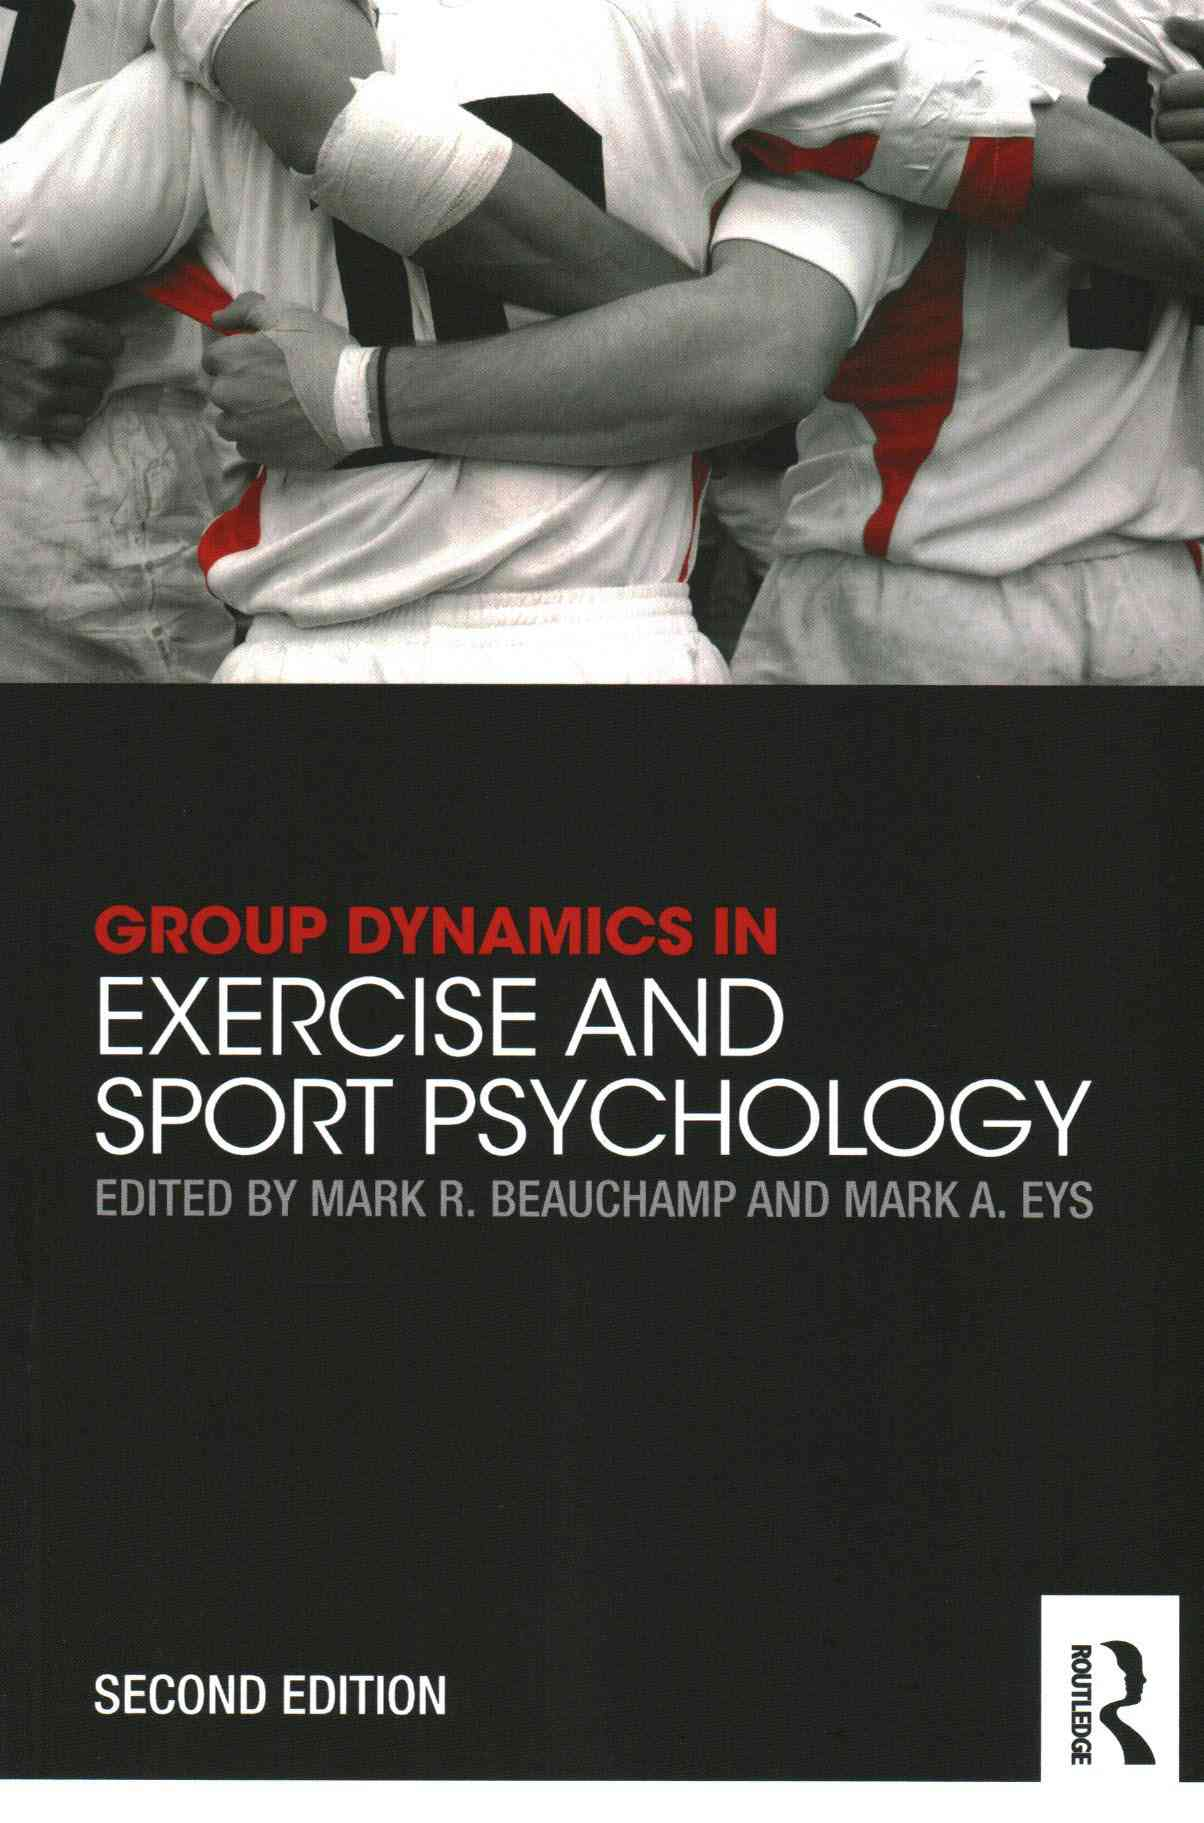 Group Dynamics in Exercise and Sport Psychology By Beauchamp, Mark R. (EDT)/ Eys, Mark A. (EDT)